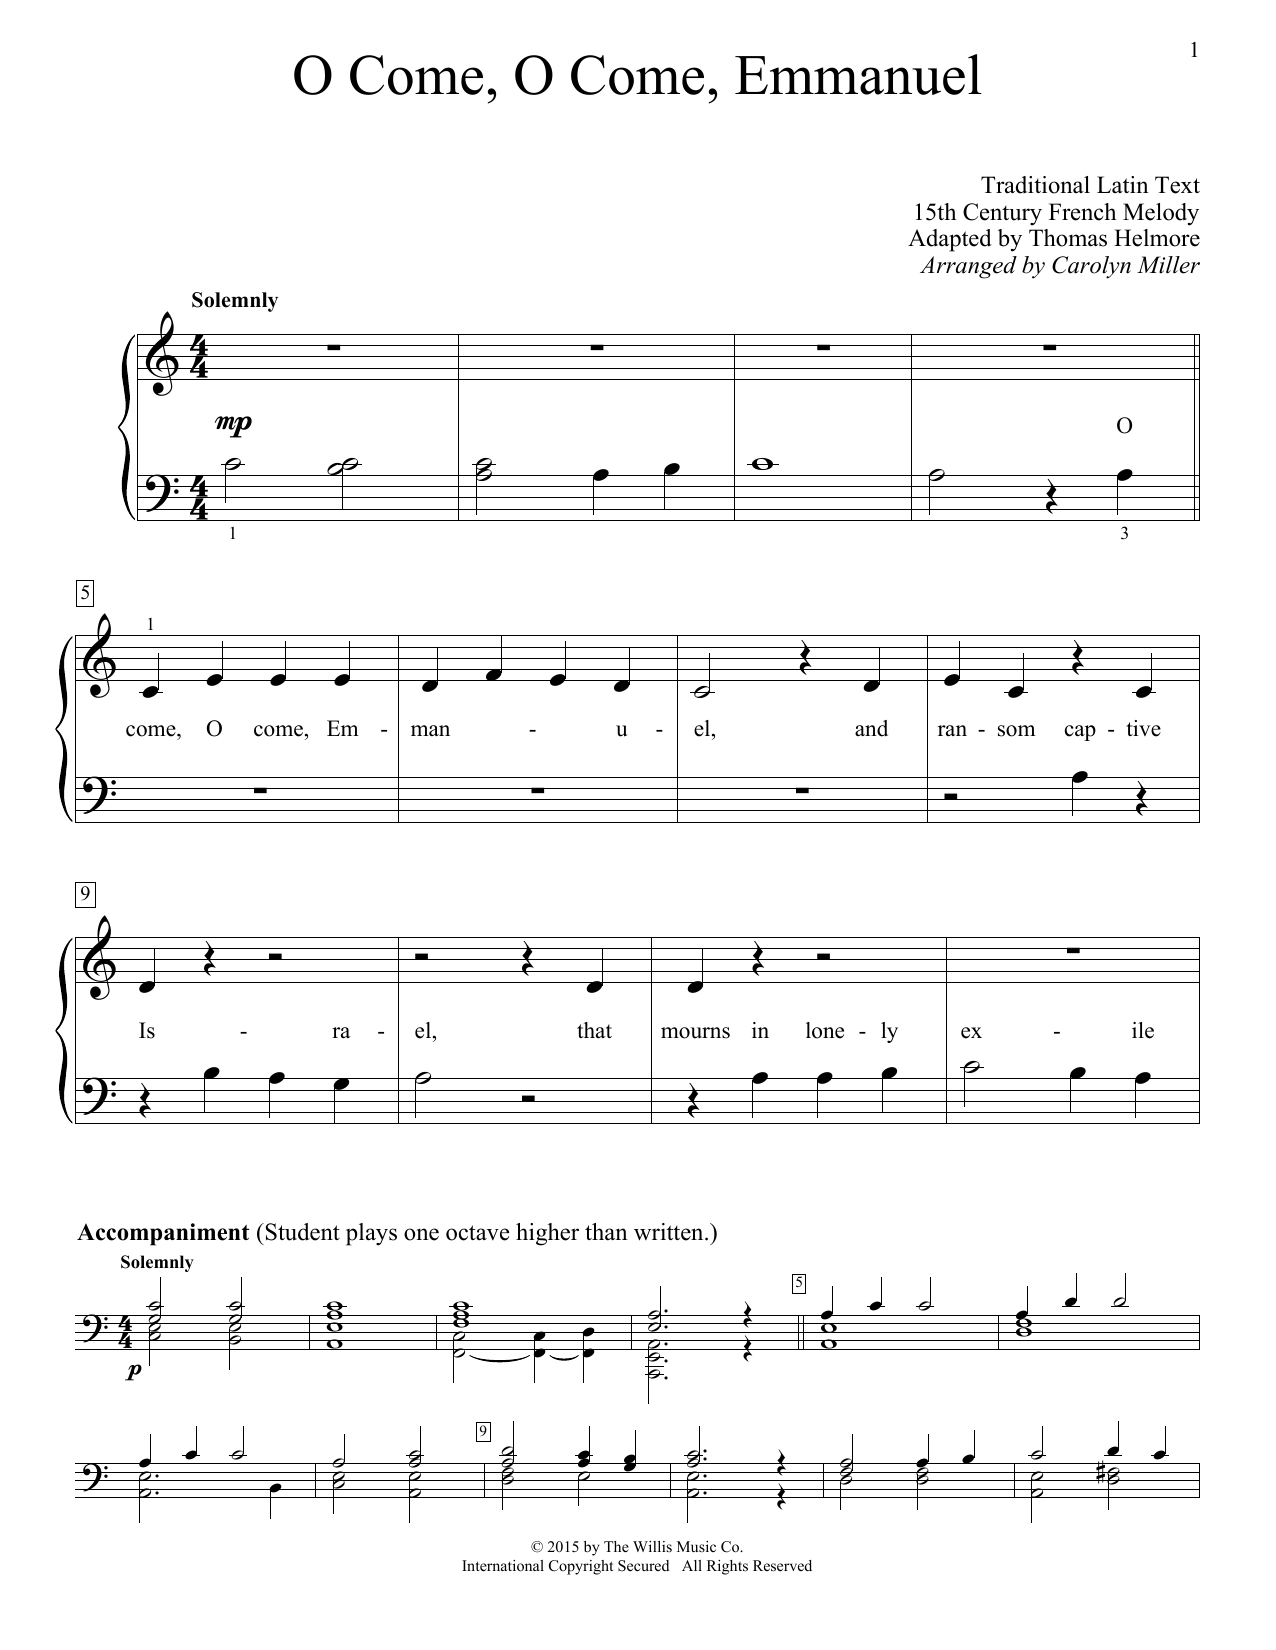 O Come, O Come, Emmanuel sheet music by Christmas Carol ...